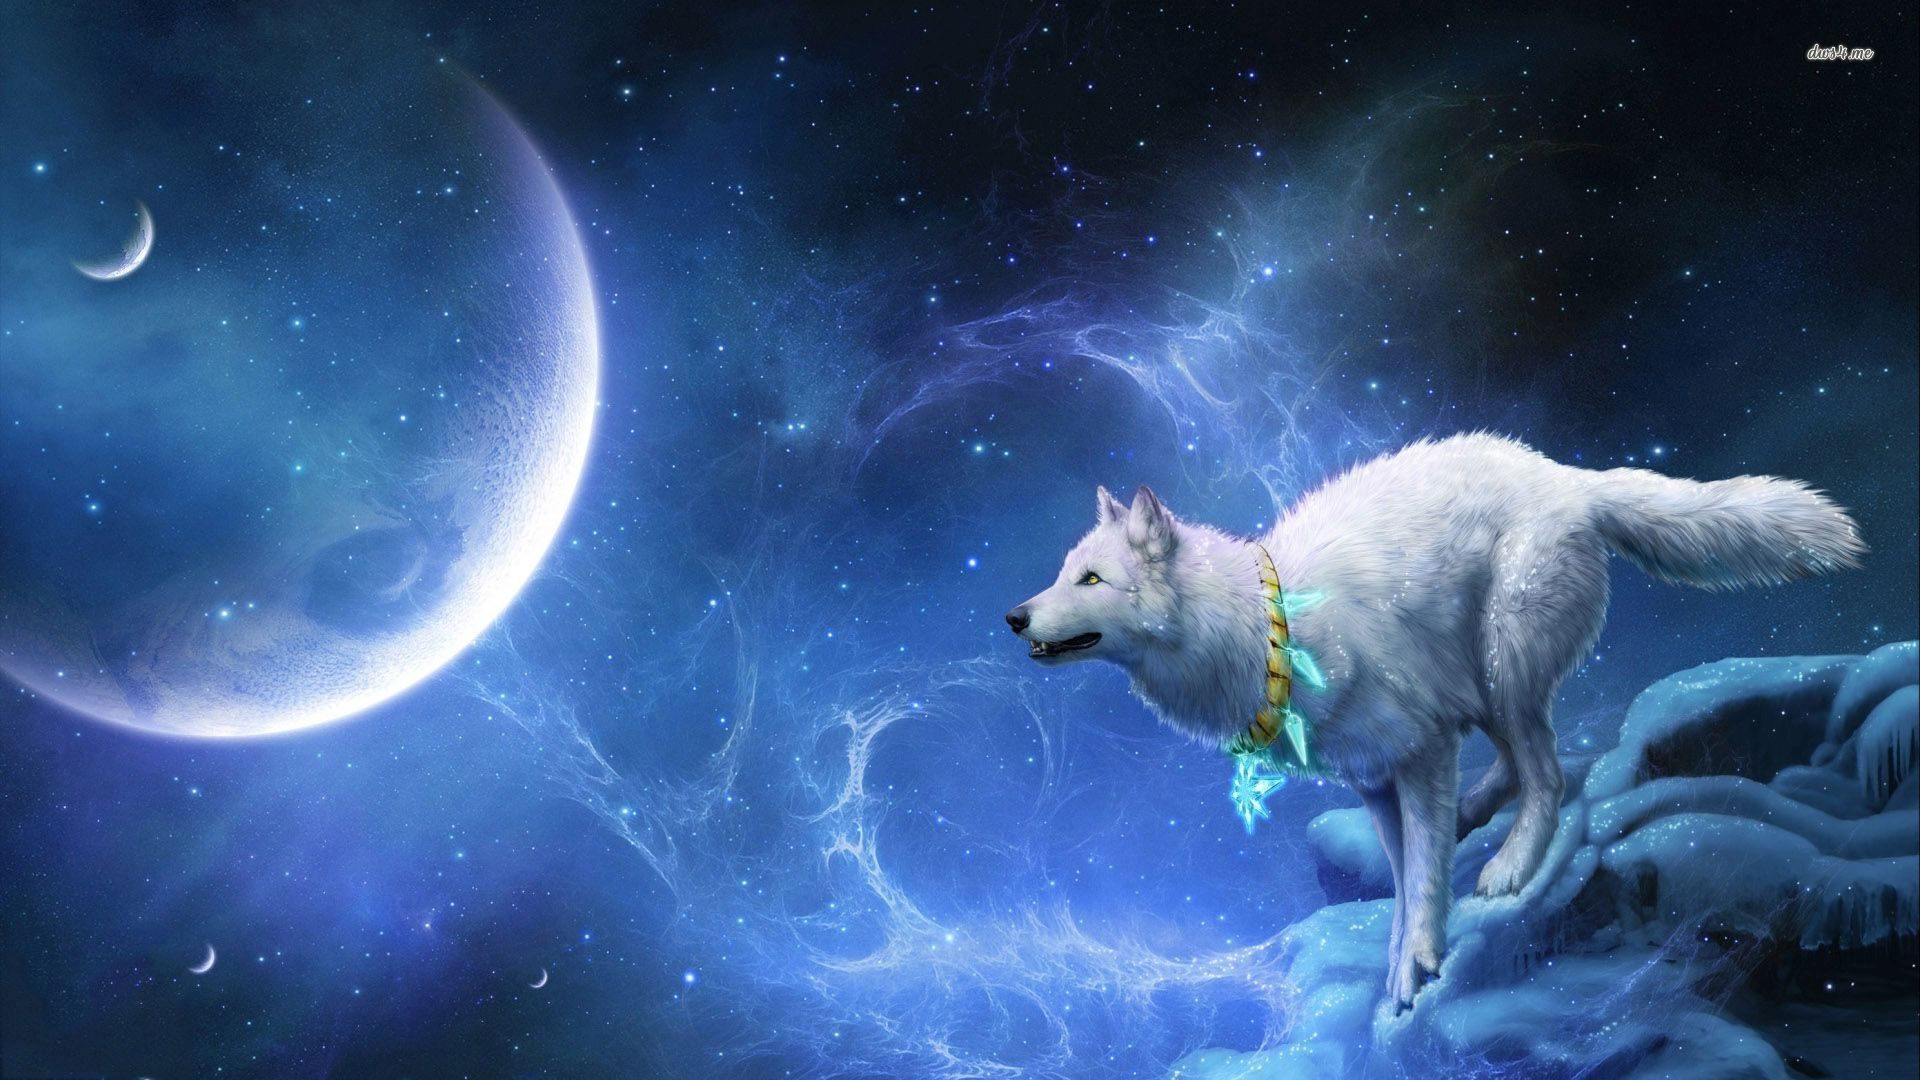 1920x1080 Fantasy Wolf Wallpapers and Background Images - stmed.net